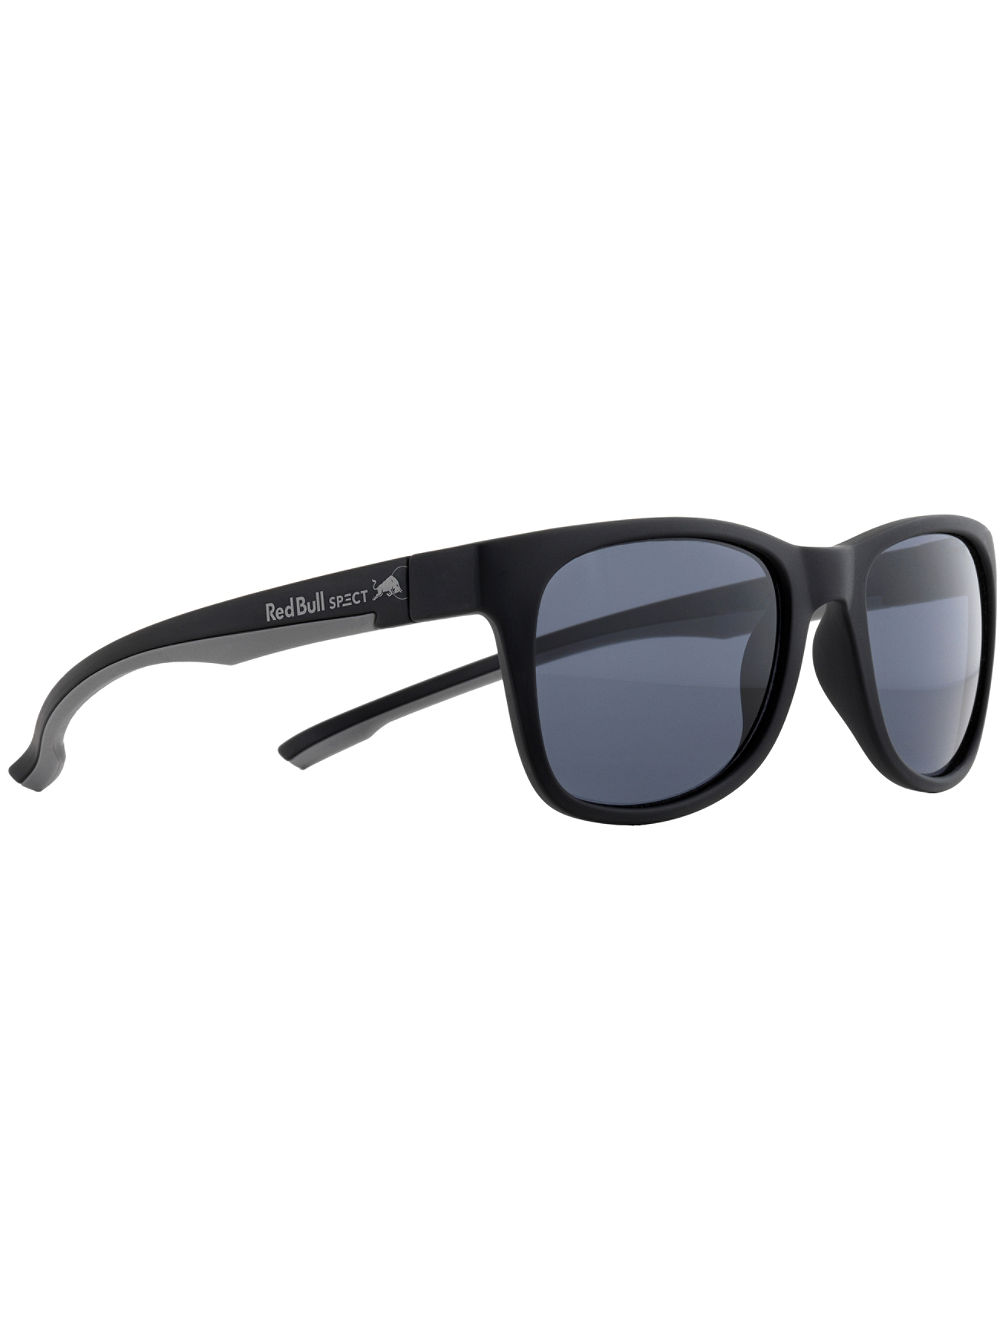 5a41db68a85d Buy Red Bull SPECT Eyewear Indy Matte Black/Grey online at Blue Tomato